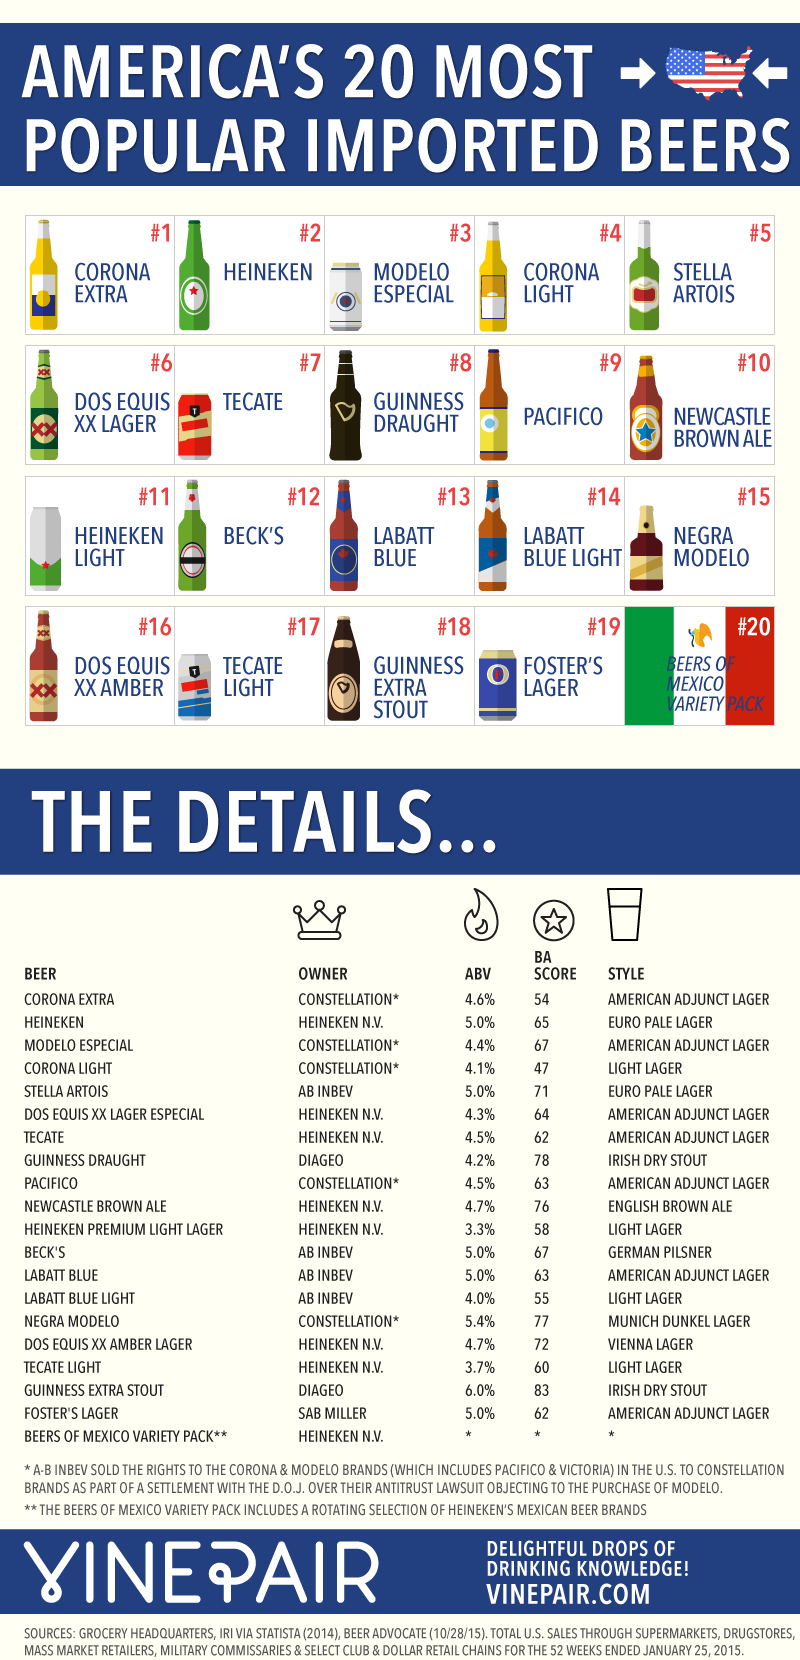 The 20 Most Popular Imported Beers In America By Sales - Infographic, Chart, Details